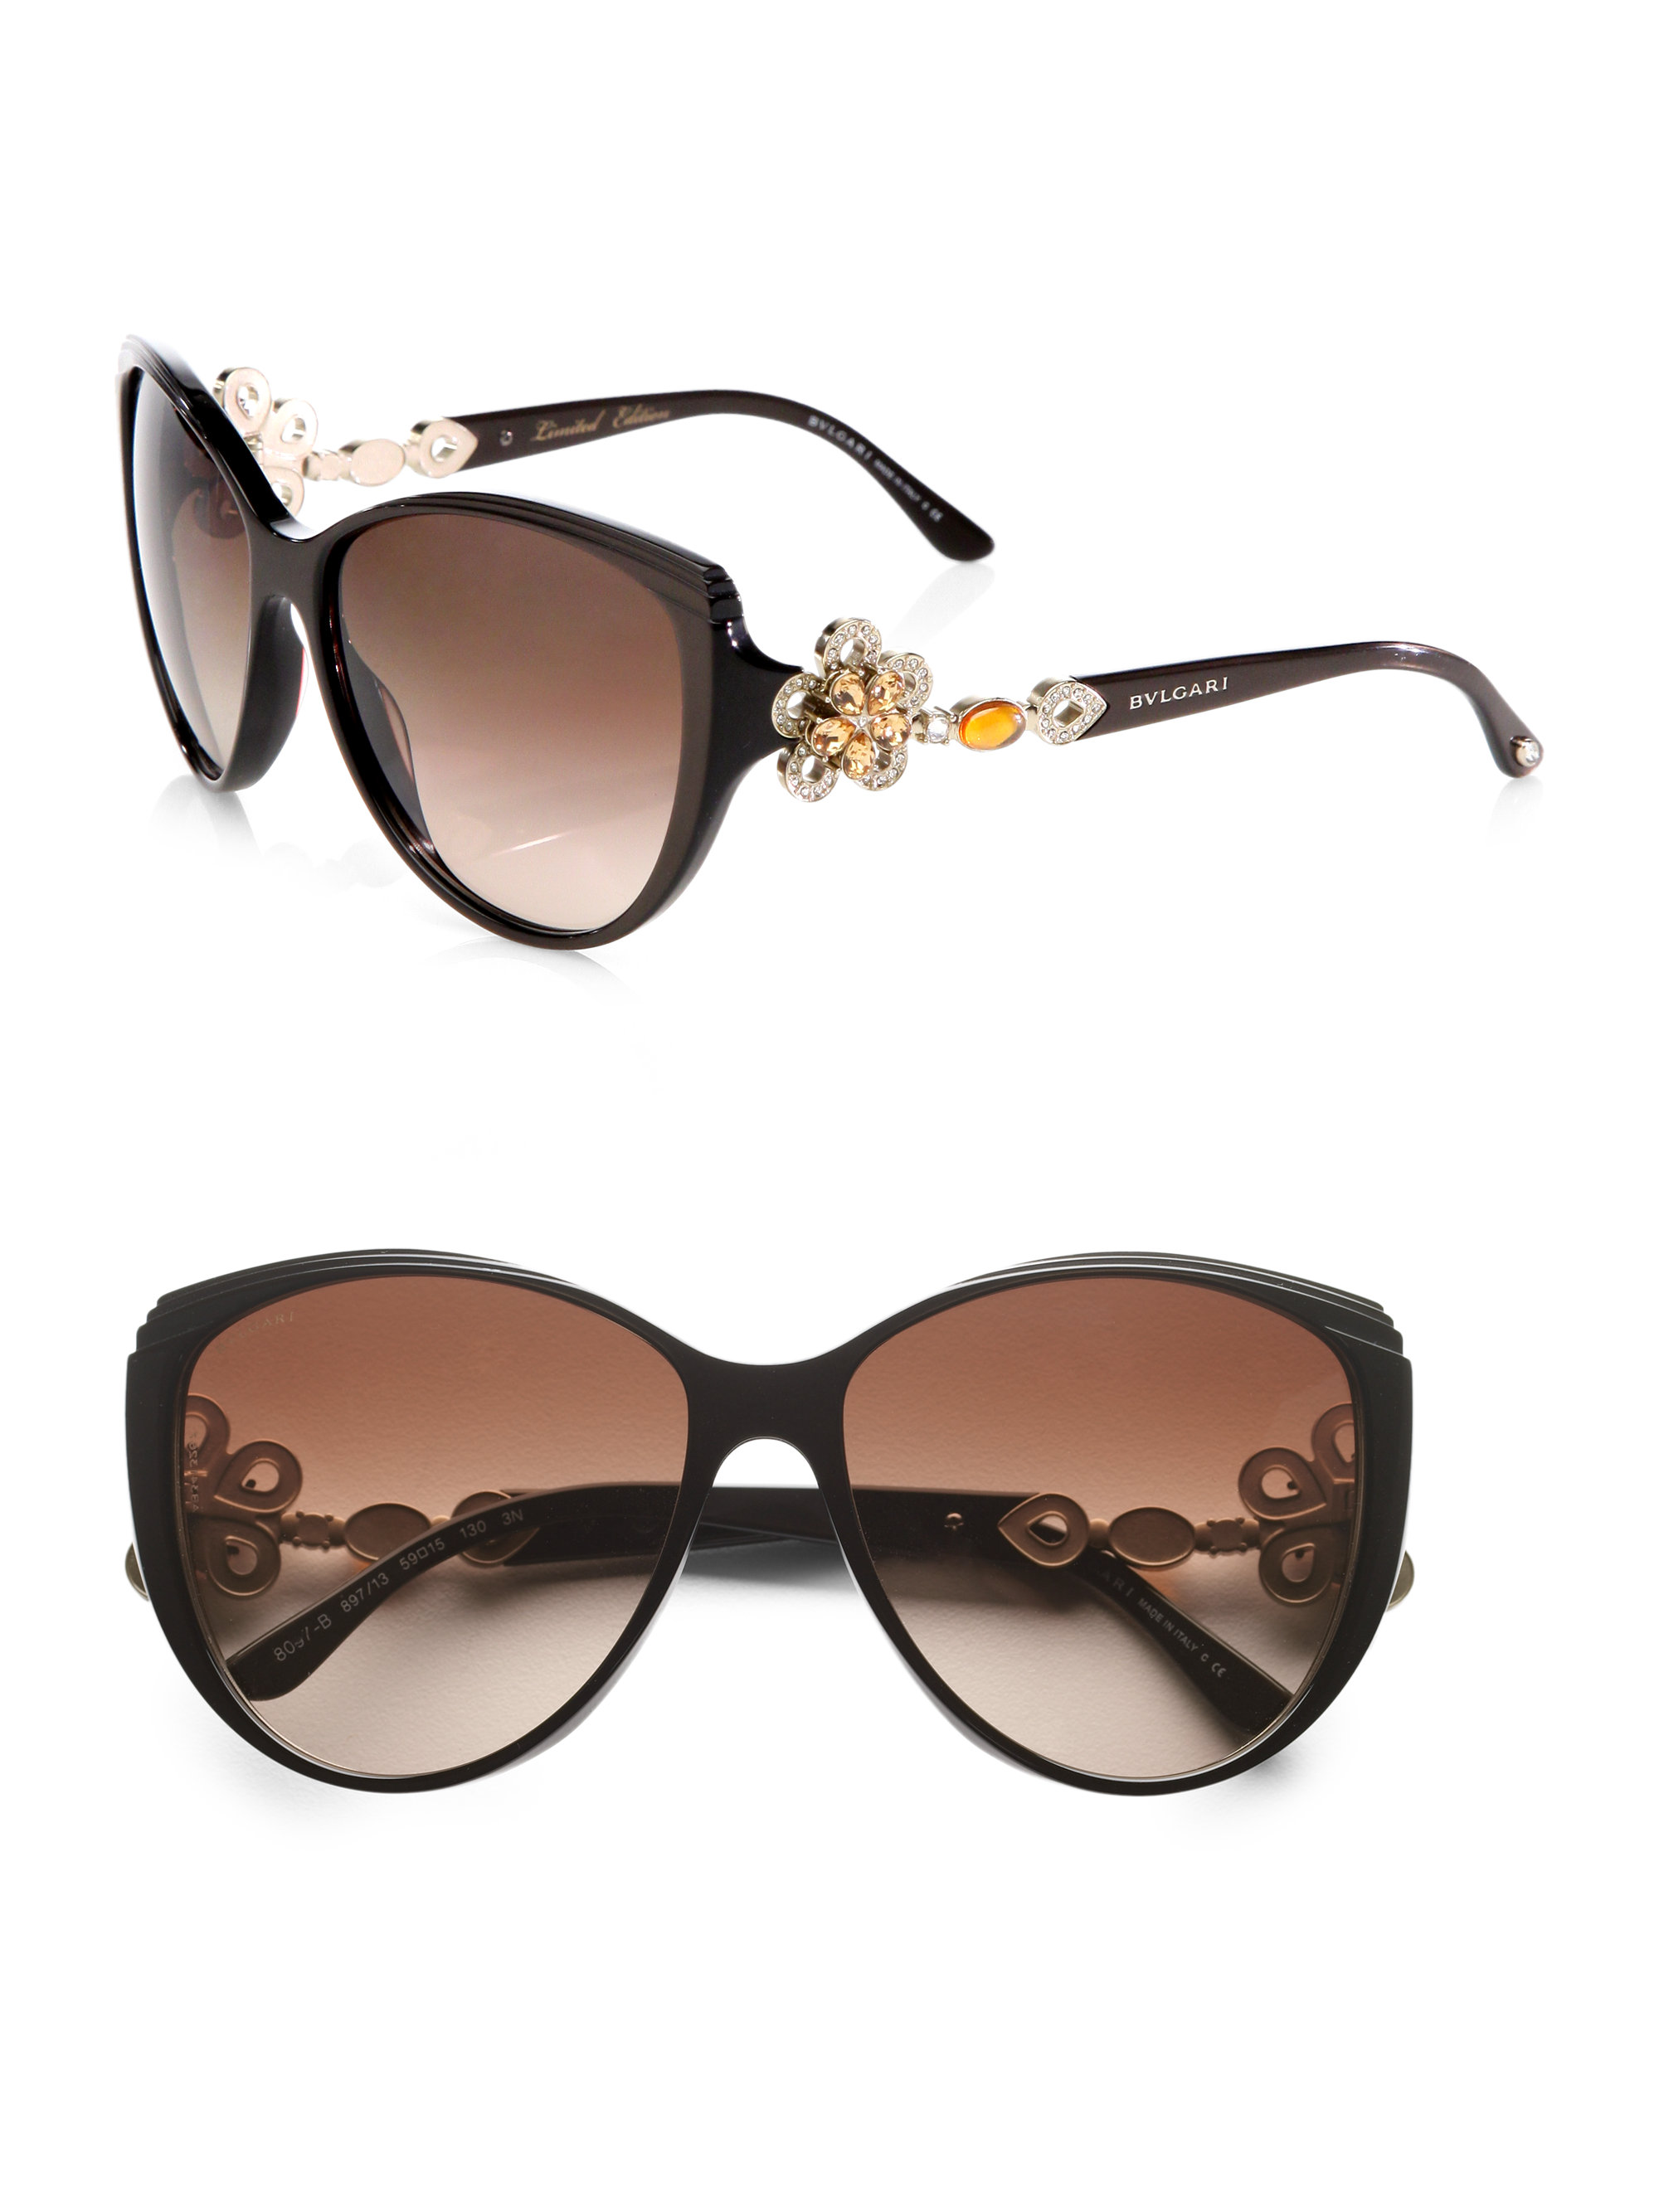 Lyst - Bvlgari Crystal Accented Butterfly Catseye Sunglasses in Brown